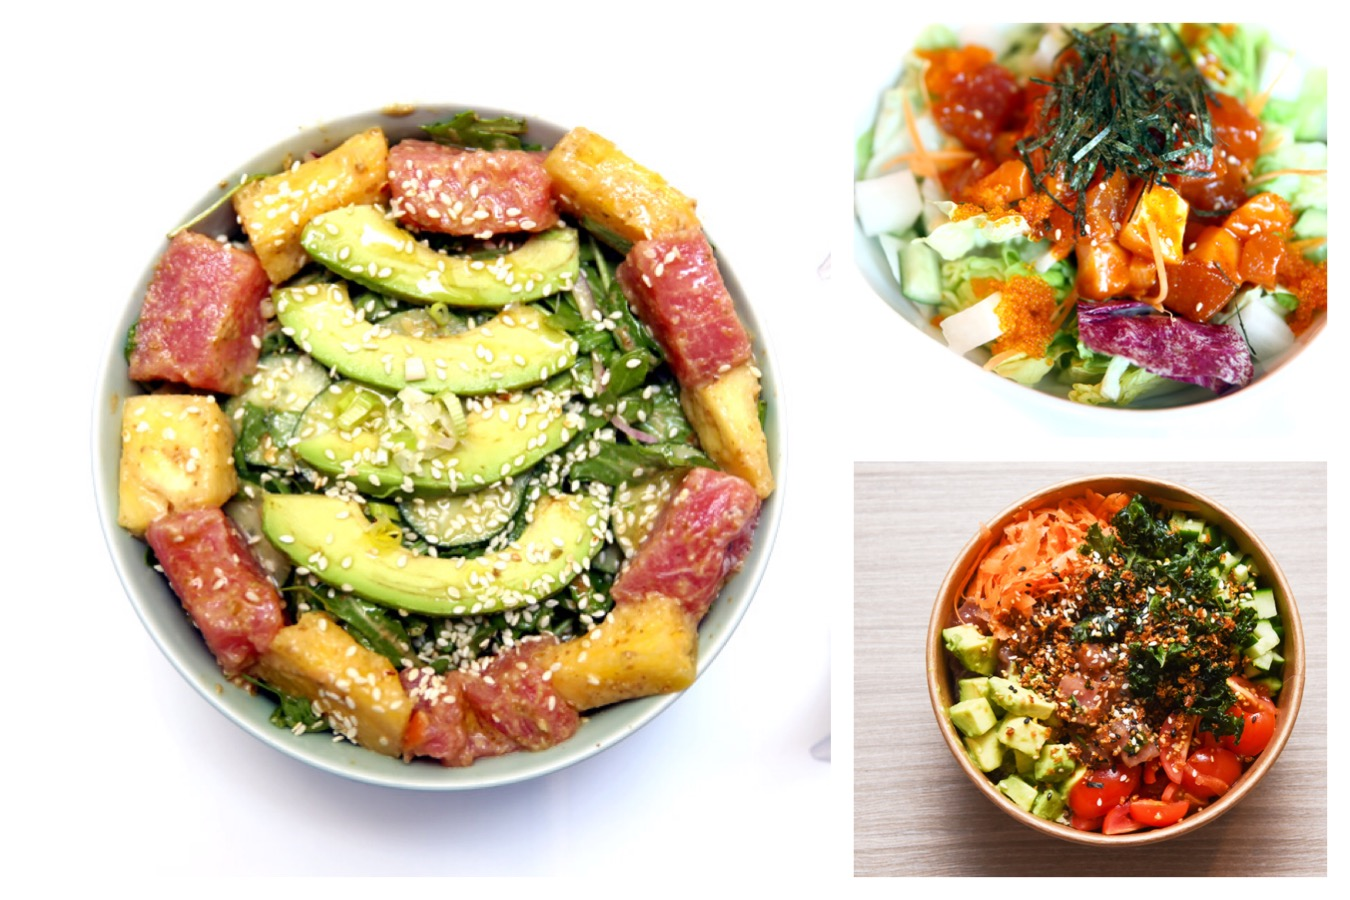 5 Best Poké Bowls In Singapore - Not Pokémons, But Healthy & Tasty Hawaiian Bowls